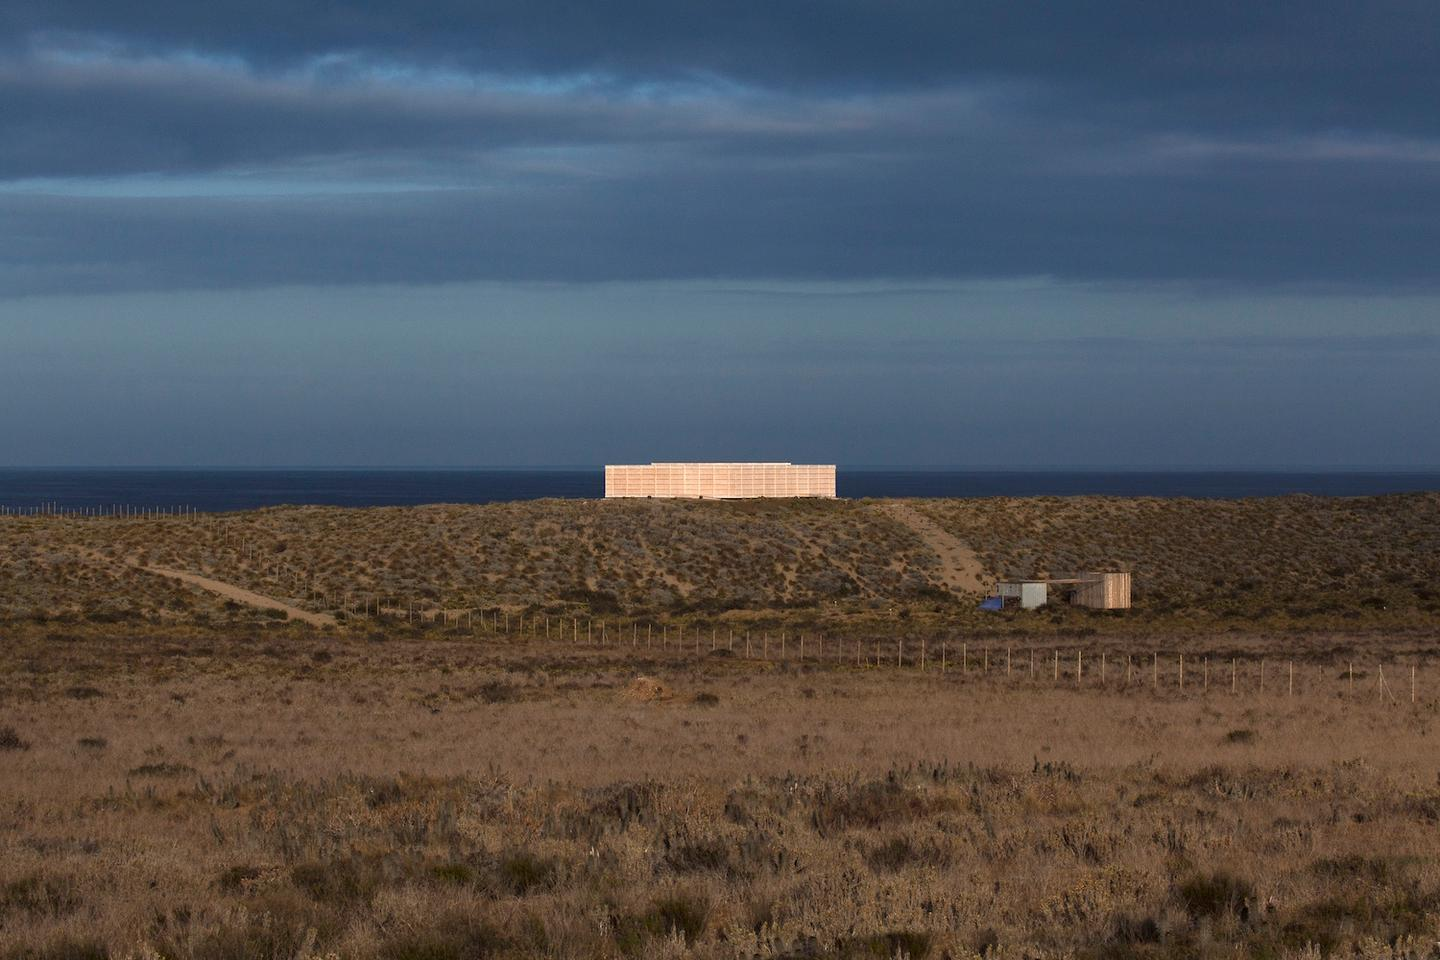 The House in Morrillos is located atop a dunein Morrillos,Chile